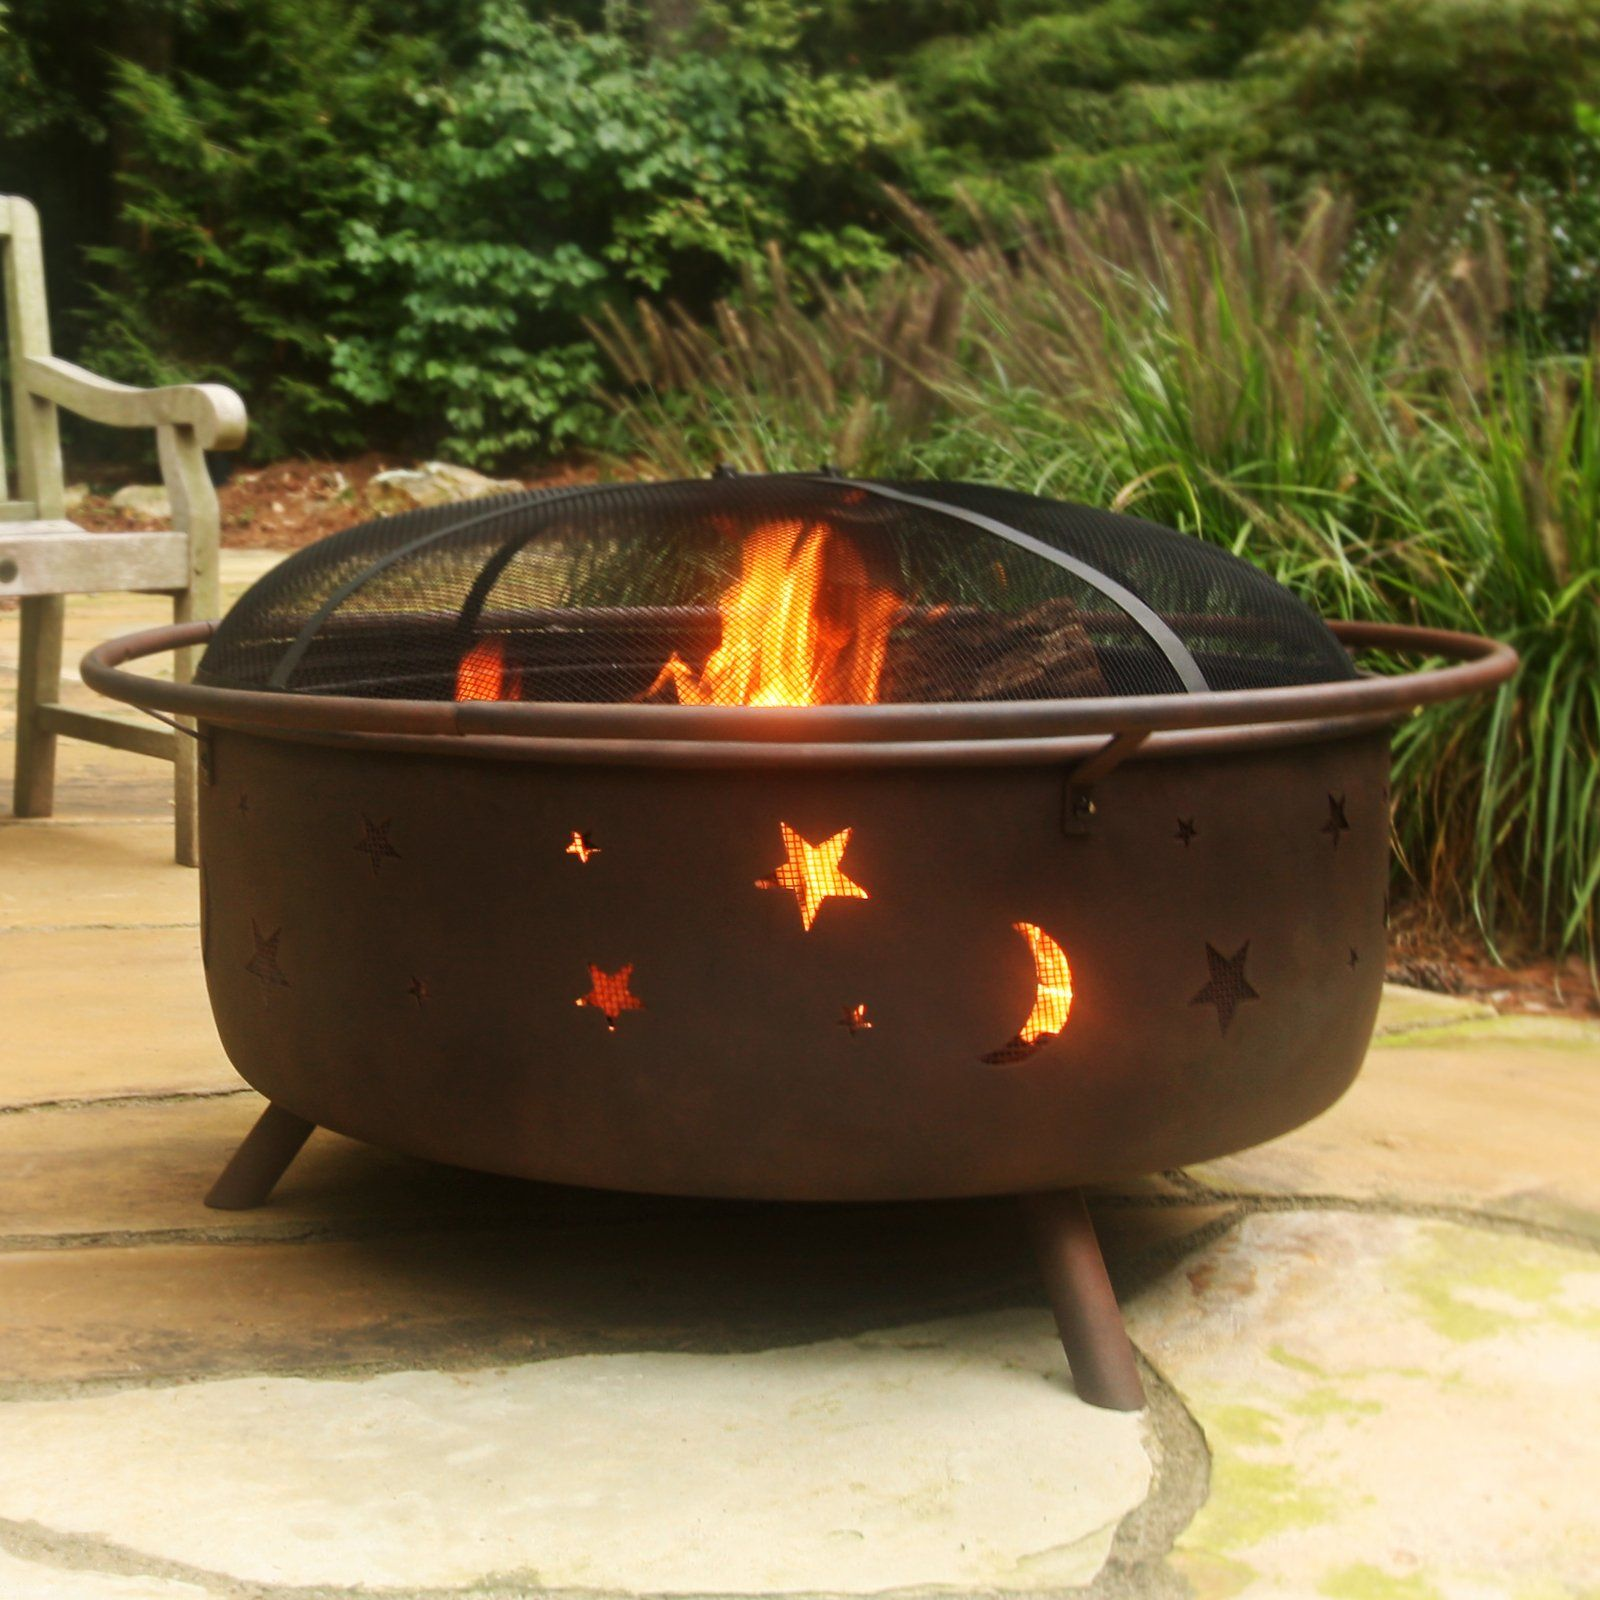 Have To Have It Red Ember Cortez Extra Large 34 In Rustic Patina Fire Pit 209 98 Hayneedle Com Garden Fire Pit Fire Pit Backyard Fire Pit Grill